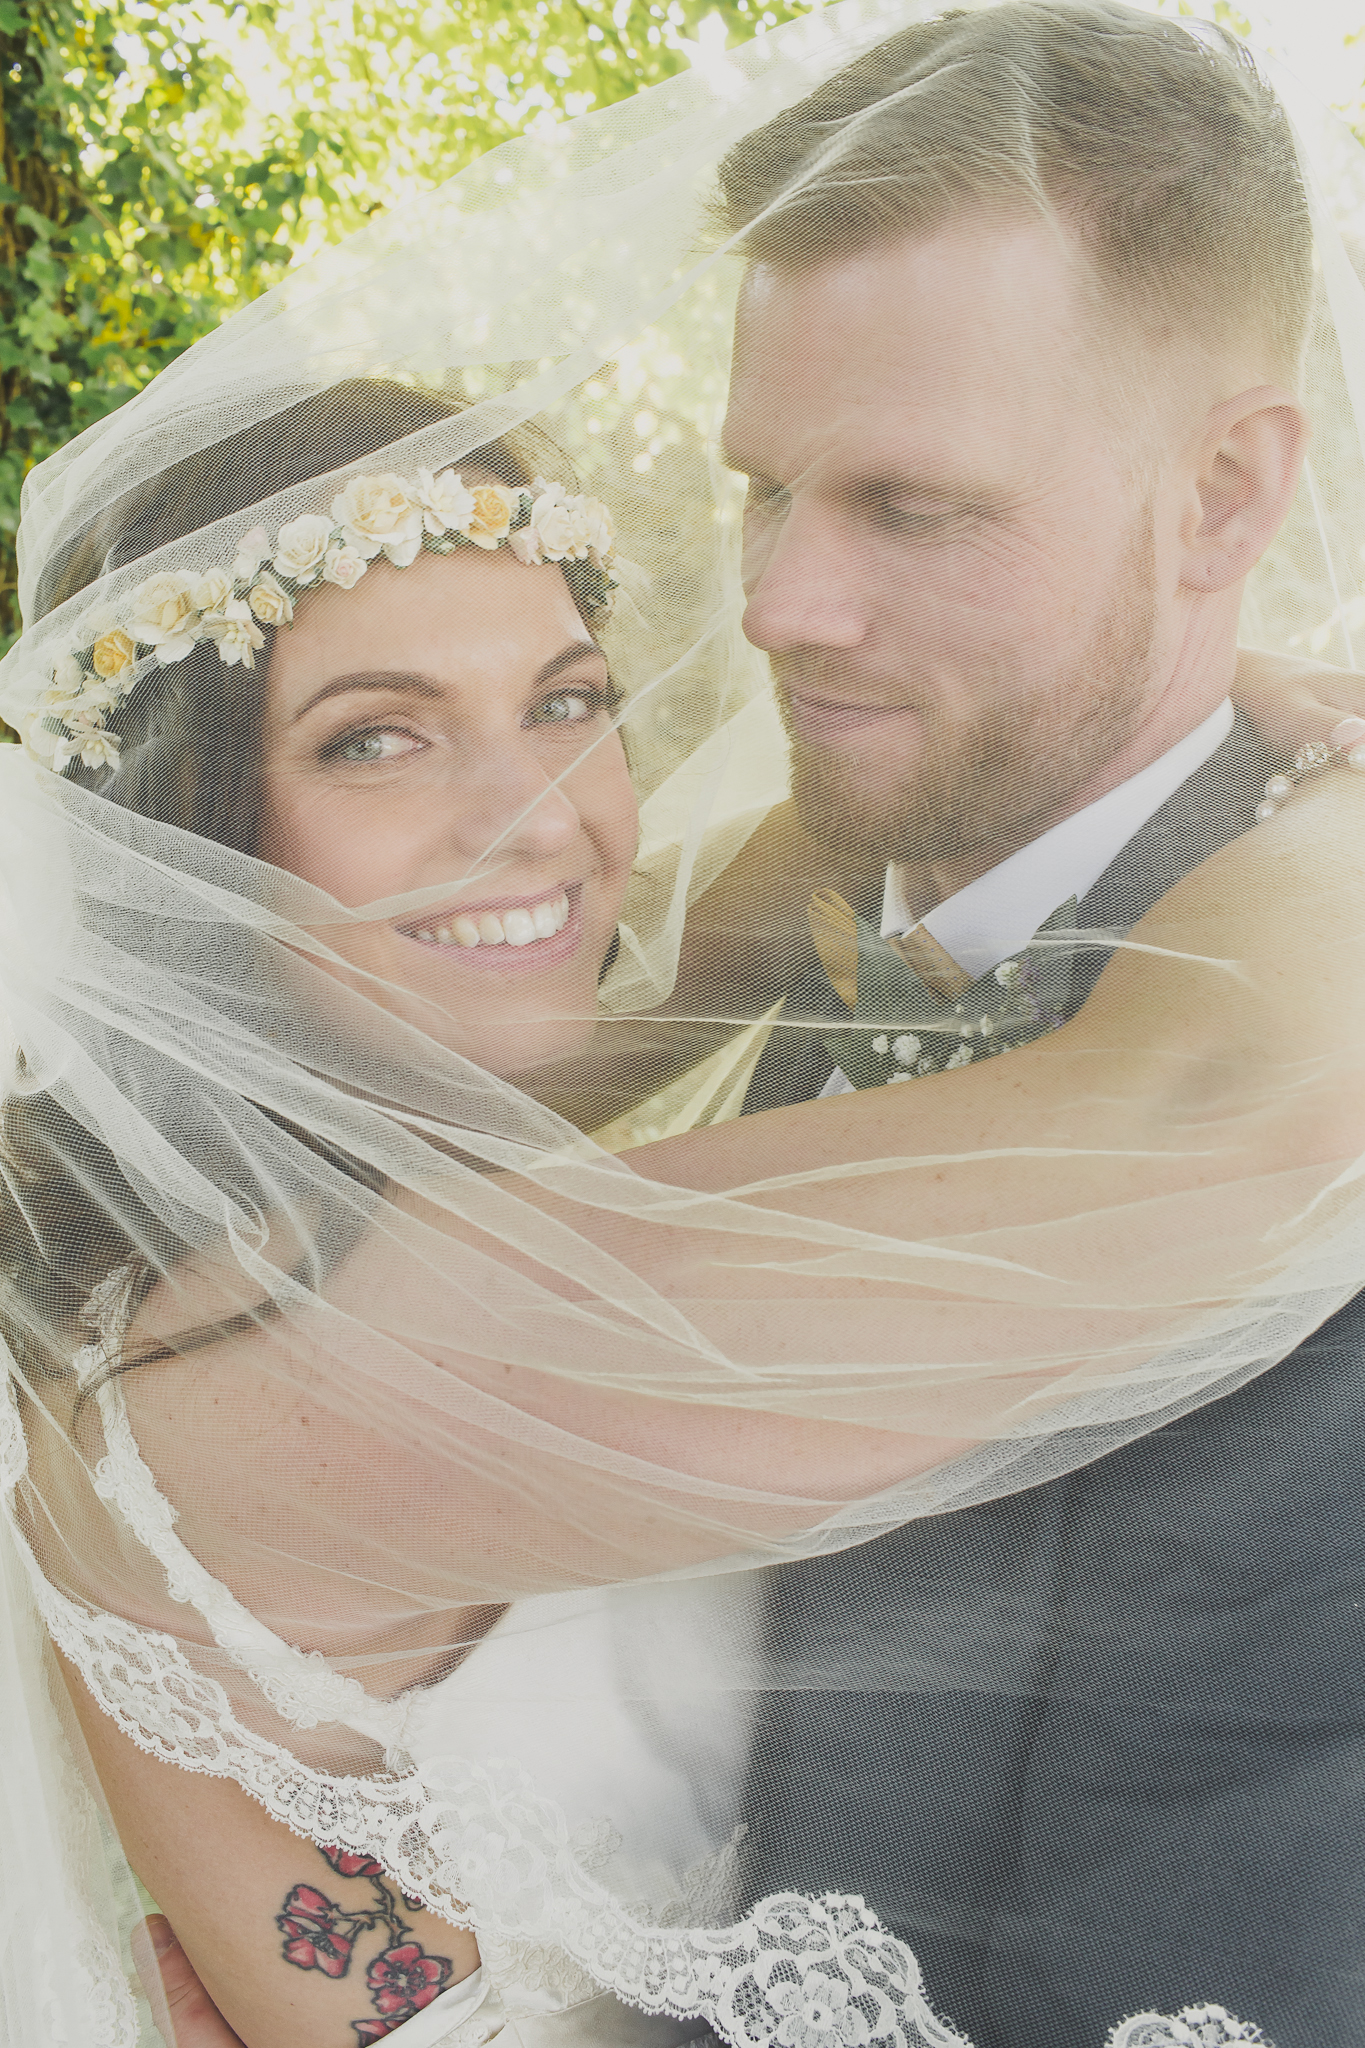 Picture of bride and groom on their wedding day. The bride is wearing her wedding dress with hair and makeup done.